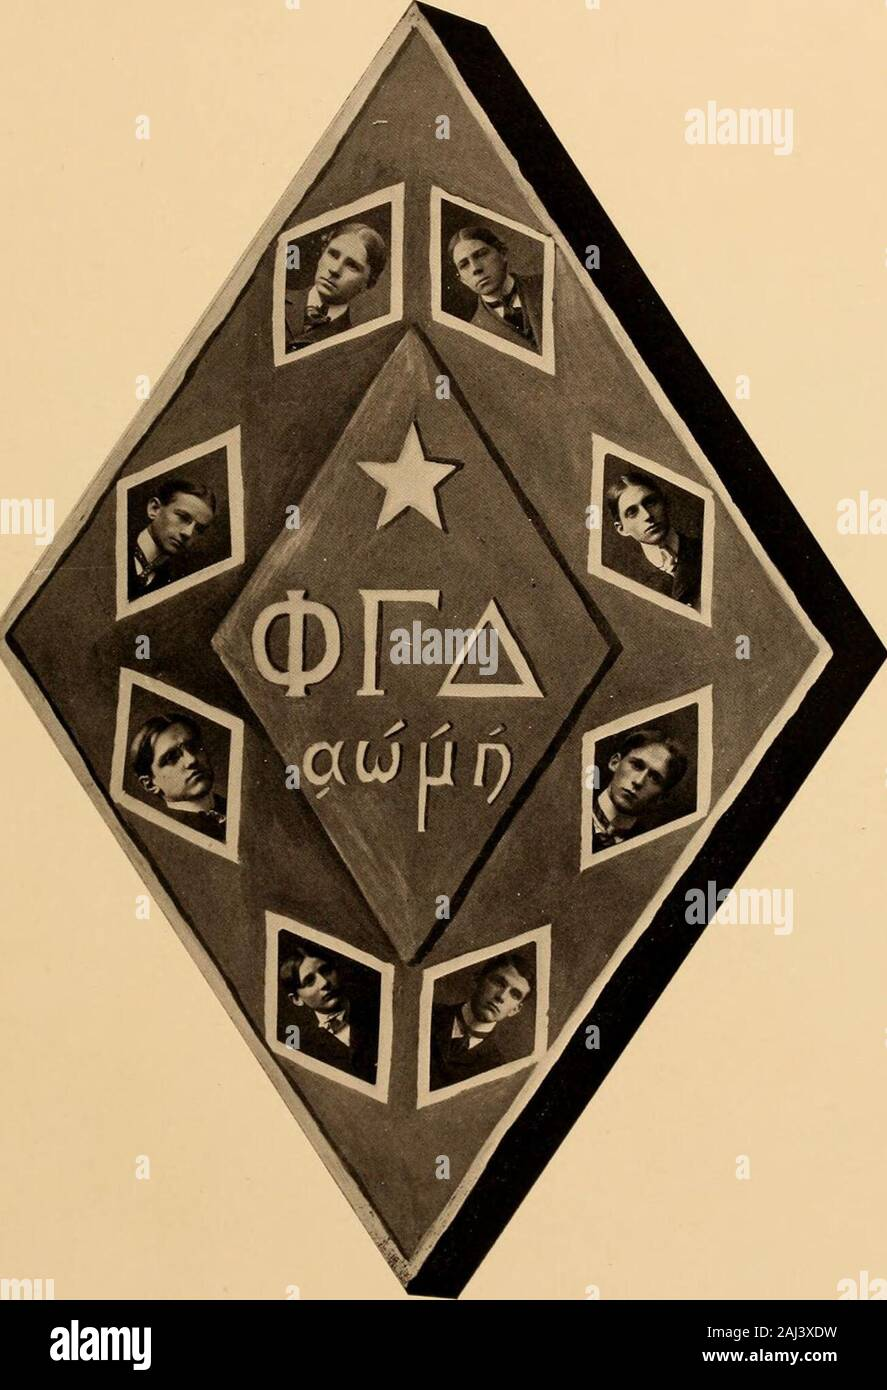 Kaleidoscope . Phi Gamma Delta. Founded at Washington and Jefferson, in 1848. Color. Royal Purple. Delta Deuteron Chapter. Established, 1870. Fratres in Collegfio. Thomas Owen Easley Colin Dunlap Spottswood J. E. B. Holladay Willard James Riddick Lewis Dupuy Johnston Walker Cutts John Craddock Lawson Richard Pegram Boykin Fratres in Urbe.Monroe D. Morton Edward S. Dupuy T. Sanford Hart Rey. B. F. Bedinger Active Chapters, Forty-eight. Alumni Chapters, Sixteen. Convention held at Niagara Palls, New 5Tork, July 28th, 20th, 30th, 31st, 190(t.Dfli-jjatis, D. Spottswood and J. Scales, 82. Sigma Chi Stock Photo